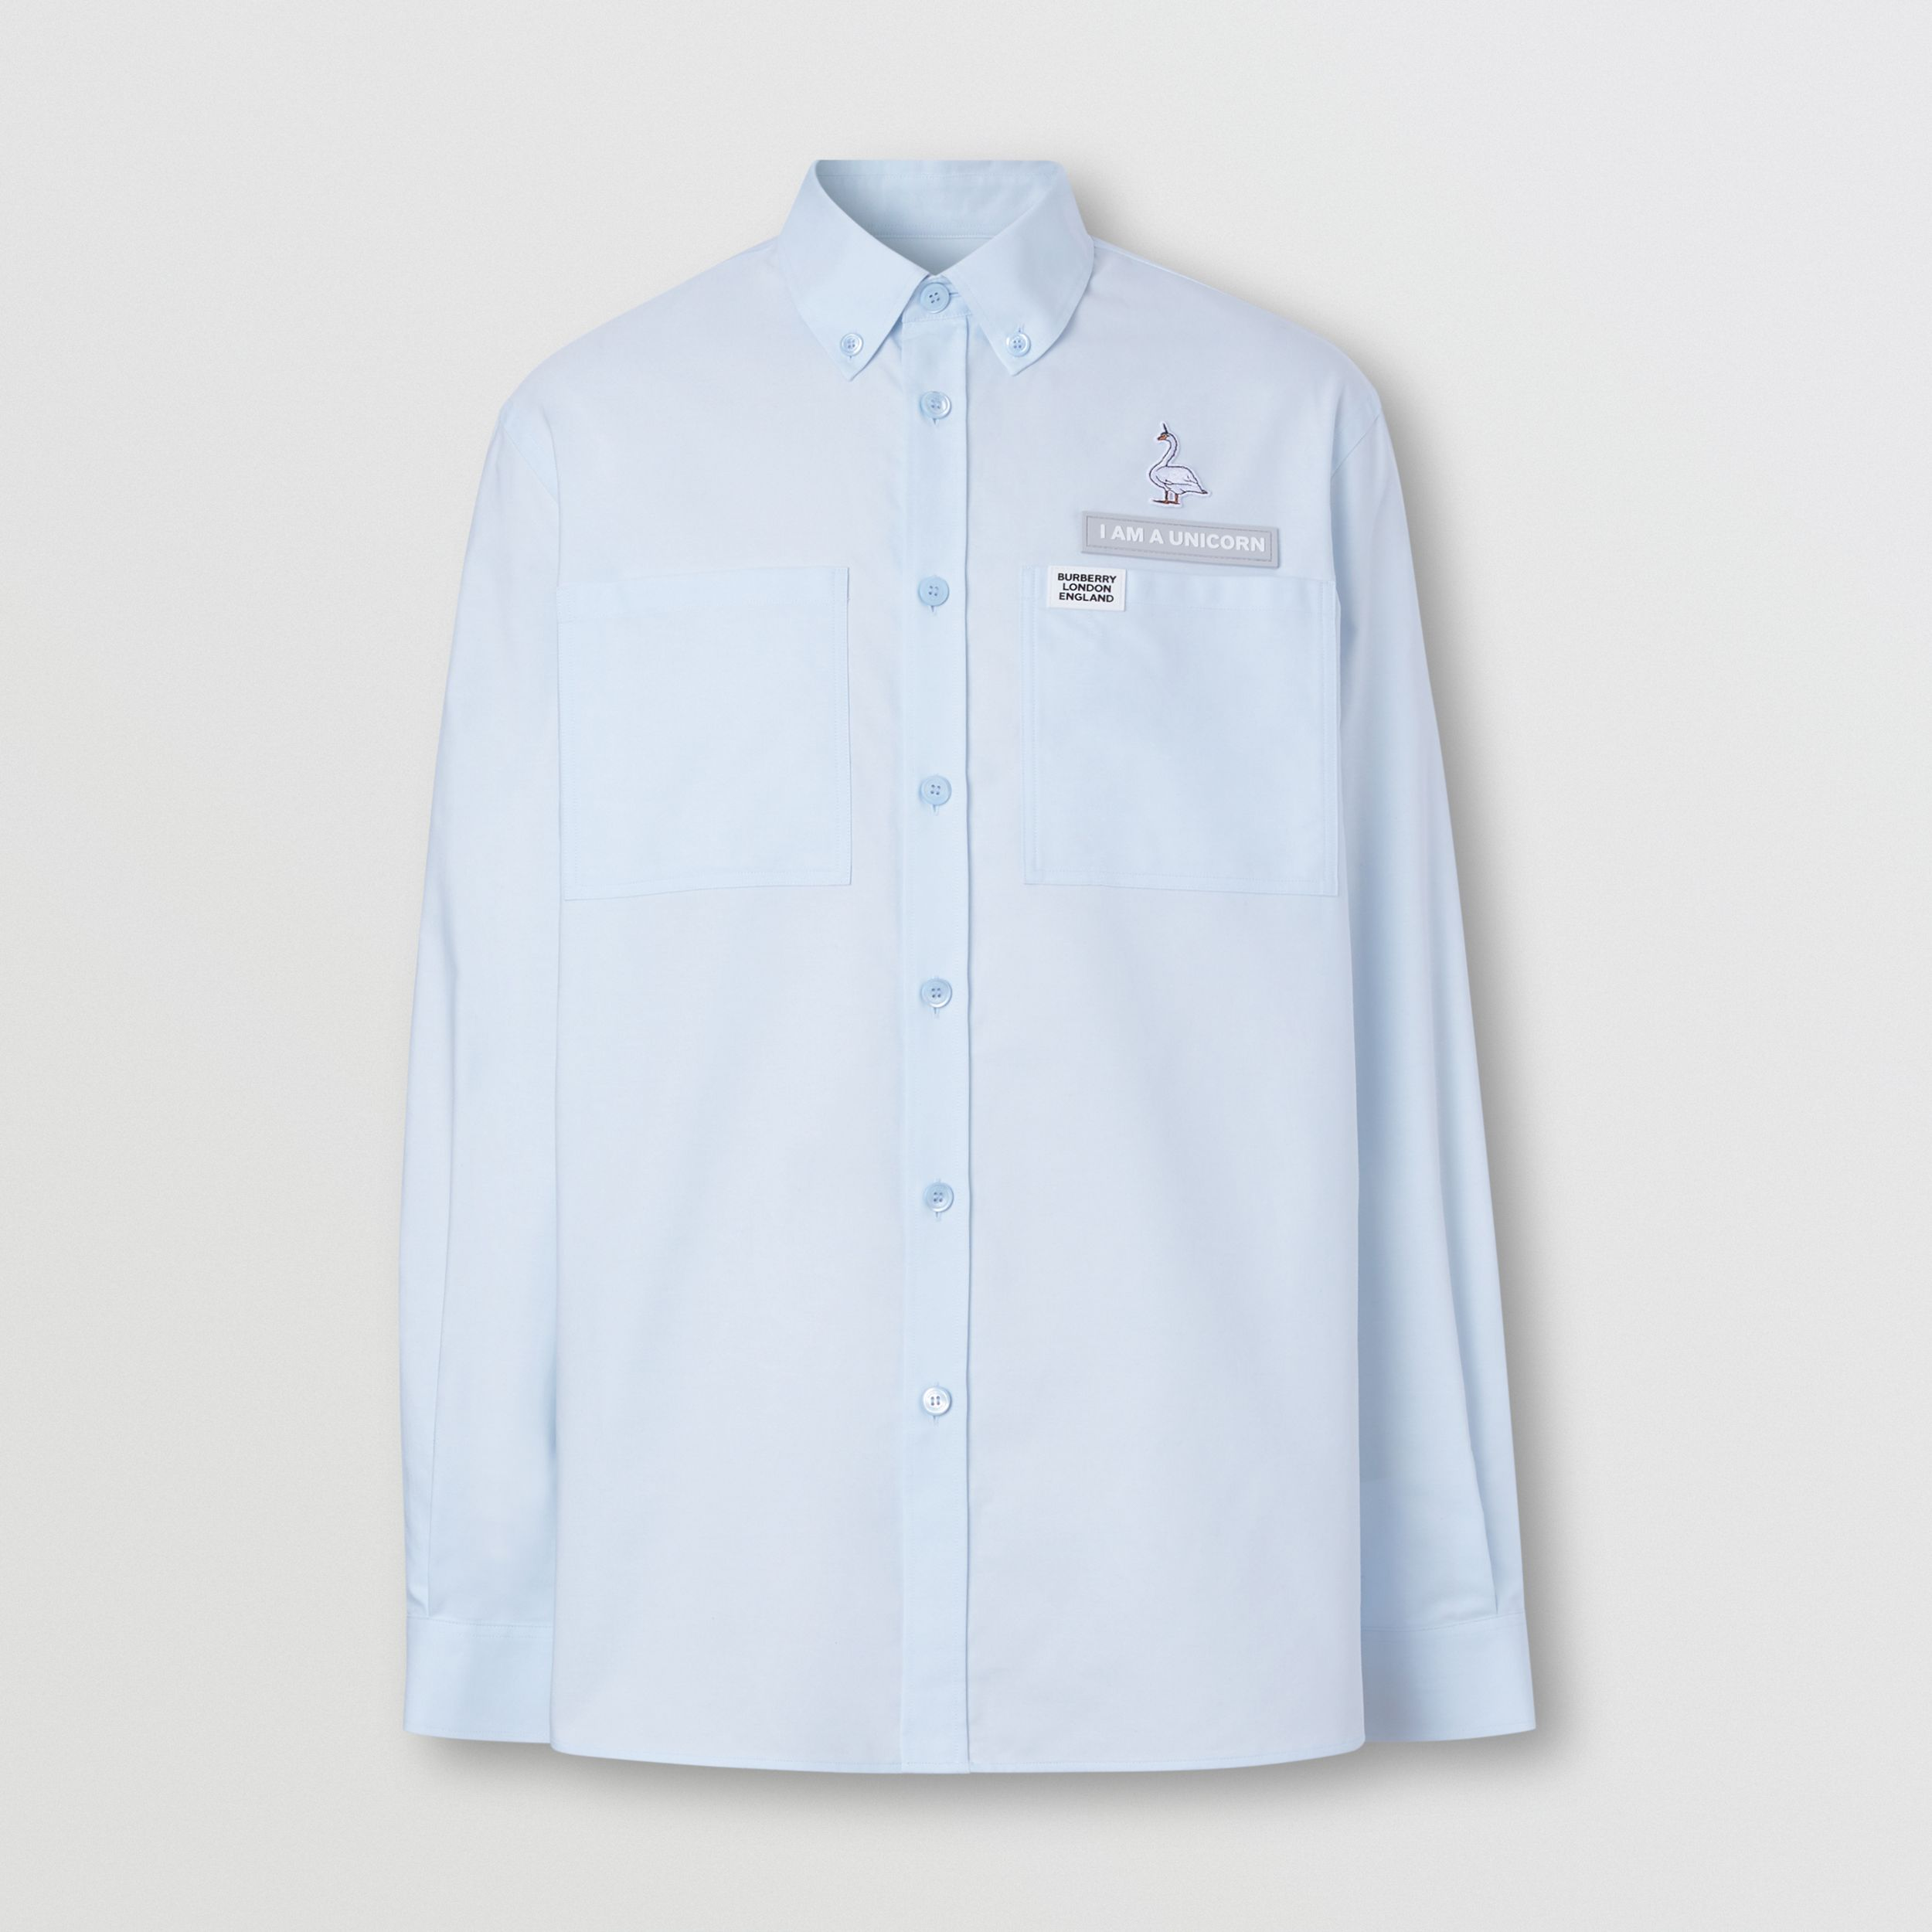 Swan and Slogan Appliqué Cotton Oversized Shirt in Sky Blue - Men | Burberry - 4